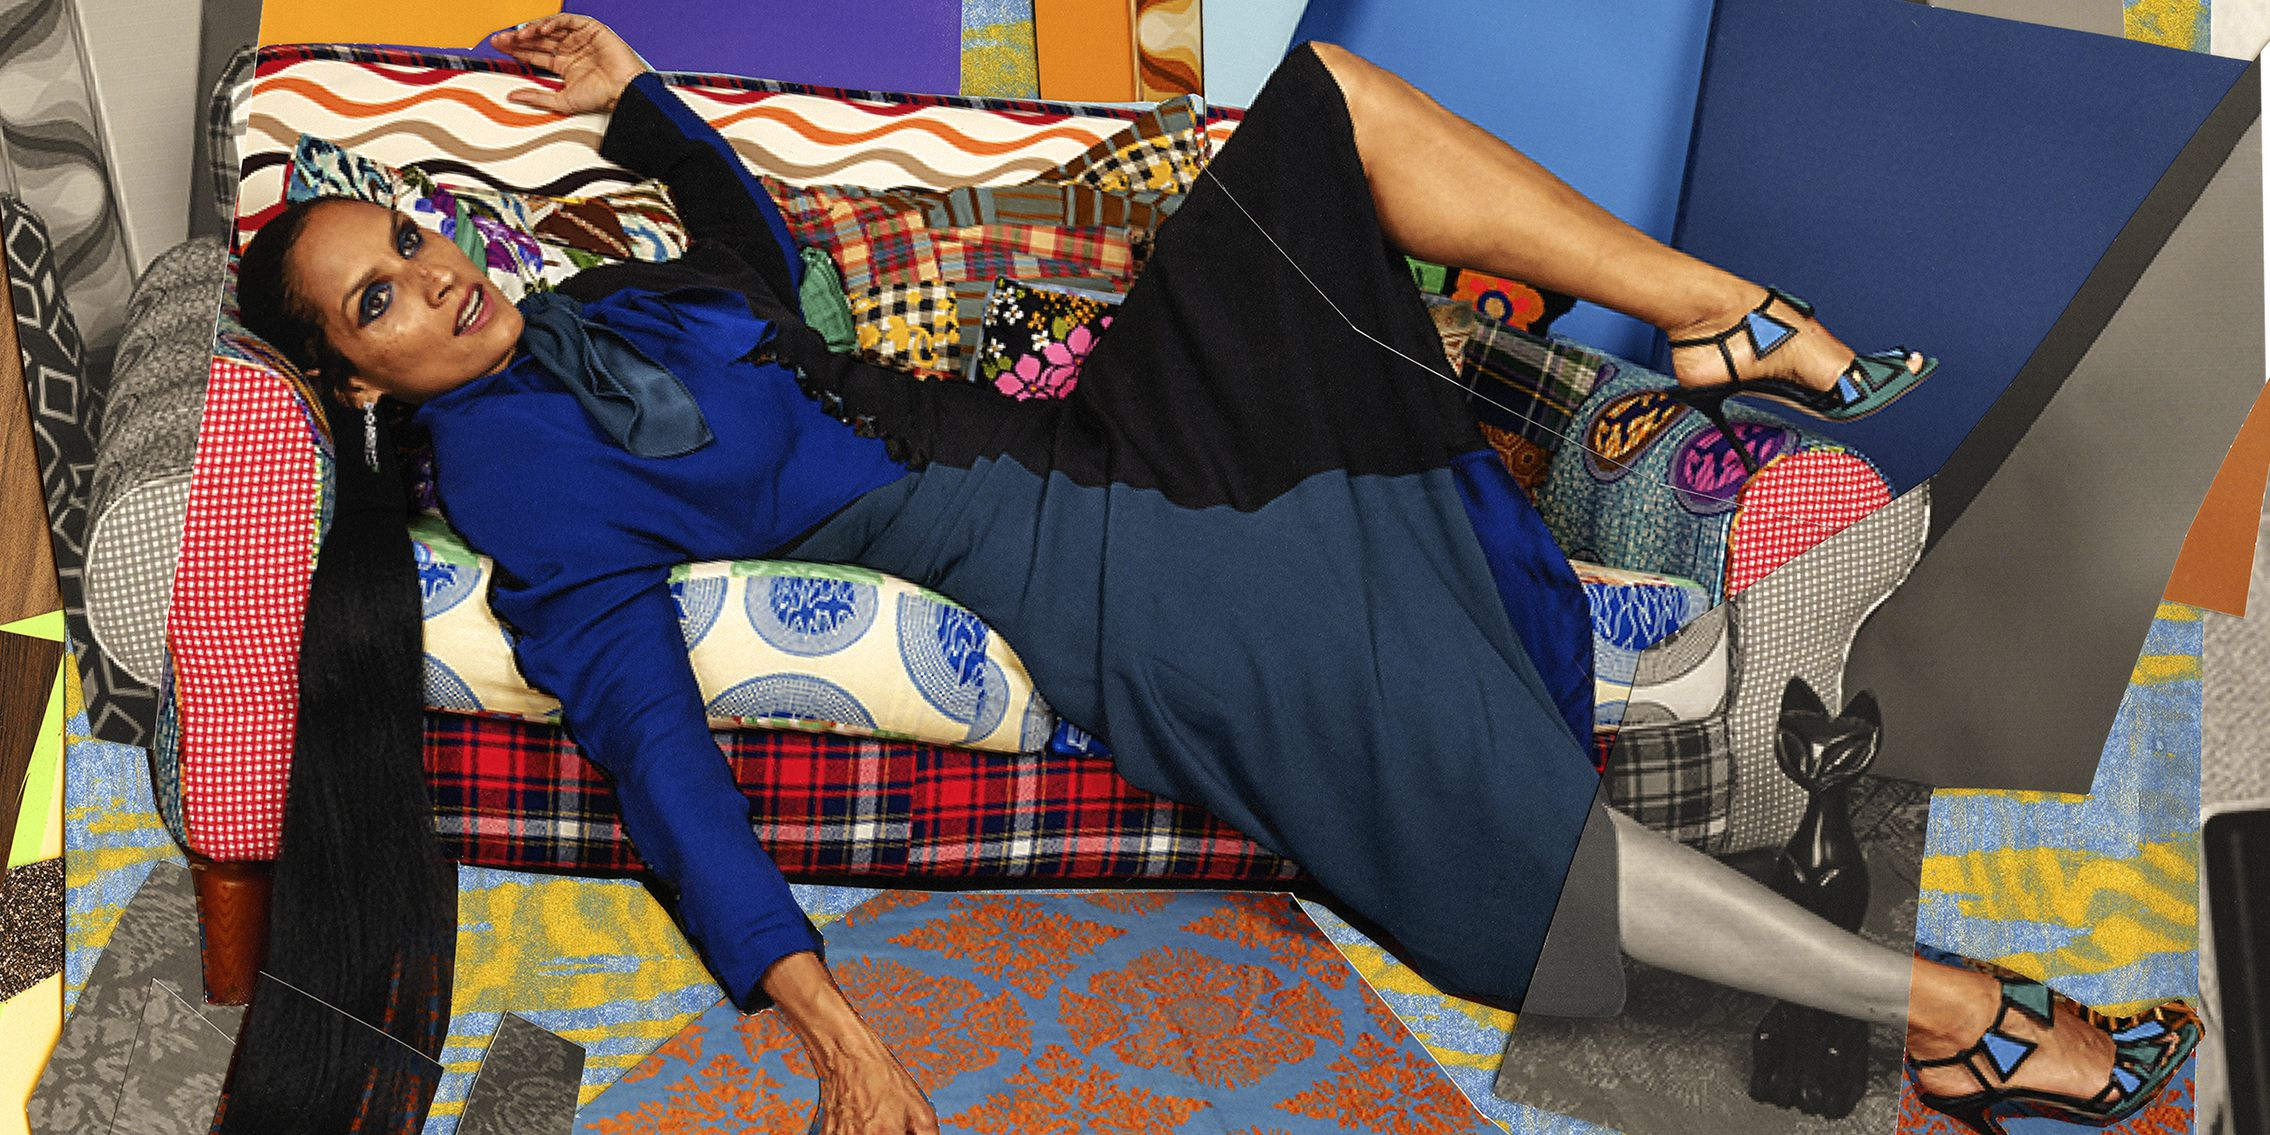 PHOTOGRAPHED BY MICKALENE THOMAS